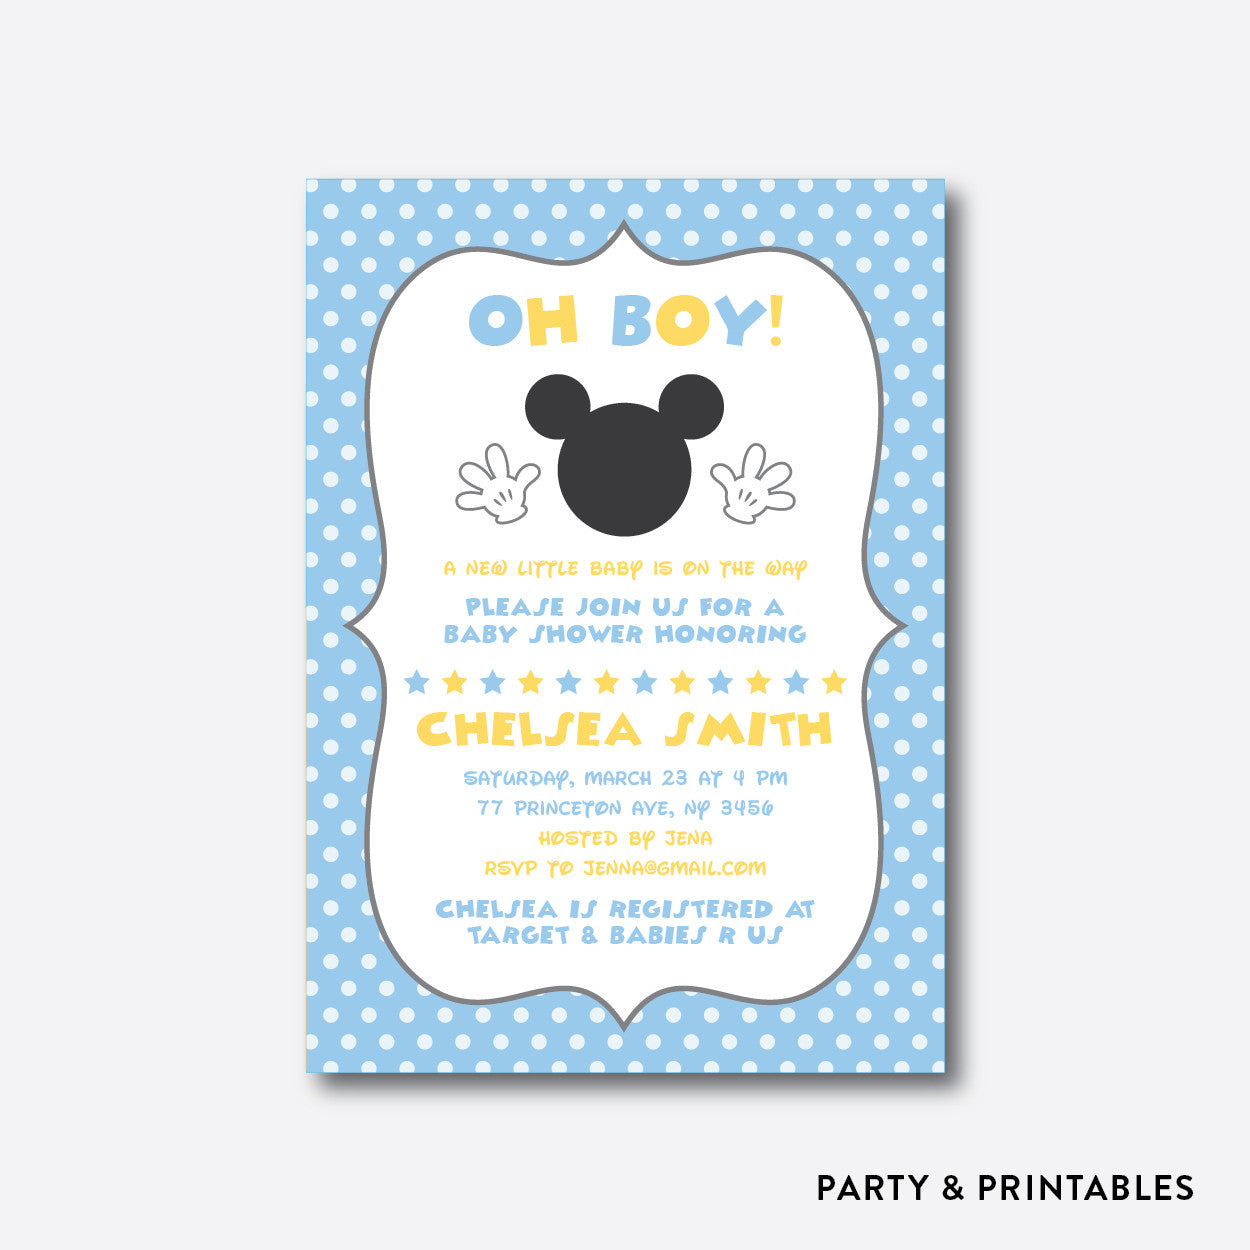 Baby Mickey Baby Shower Invitation / Personalized (SBS.21), invitation - Party and Printables